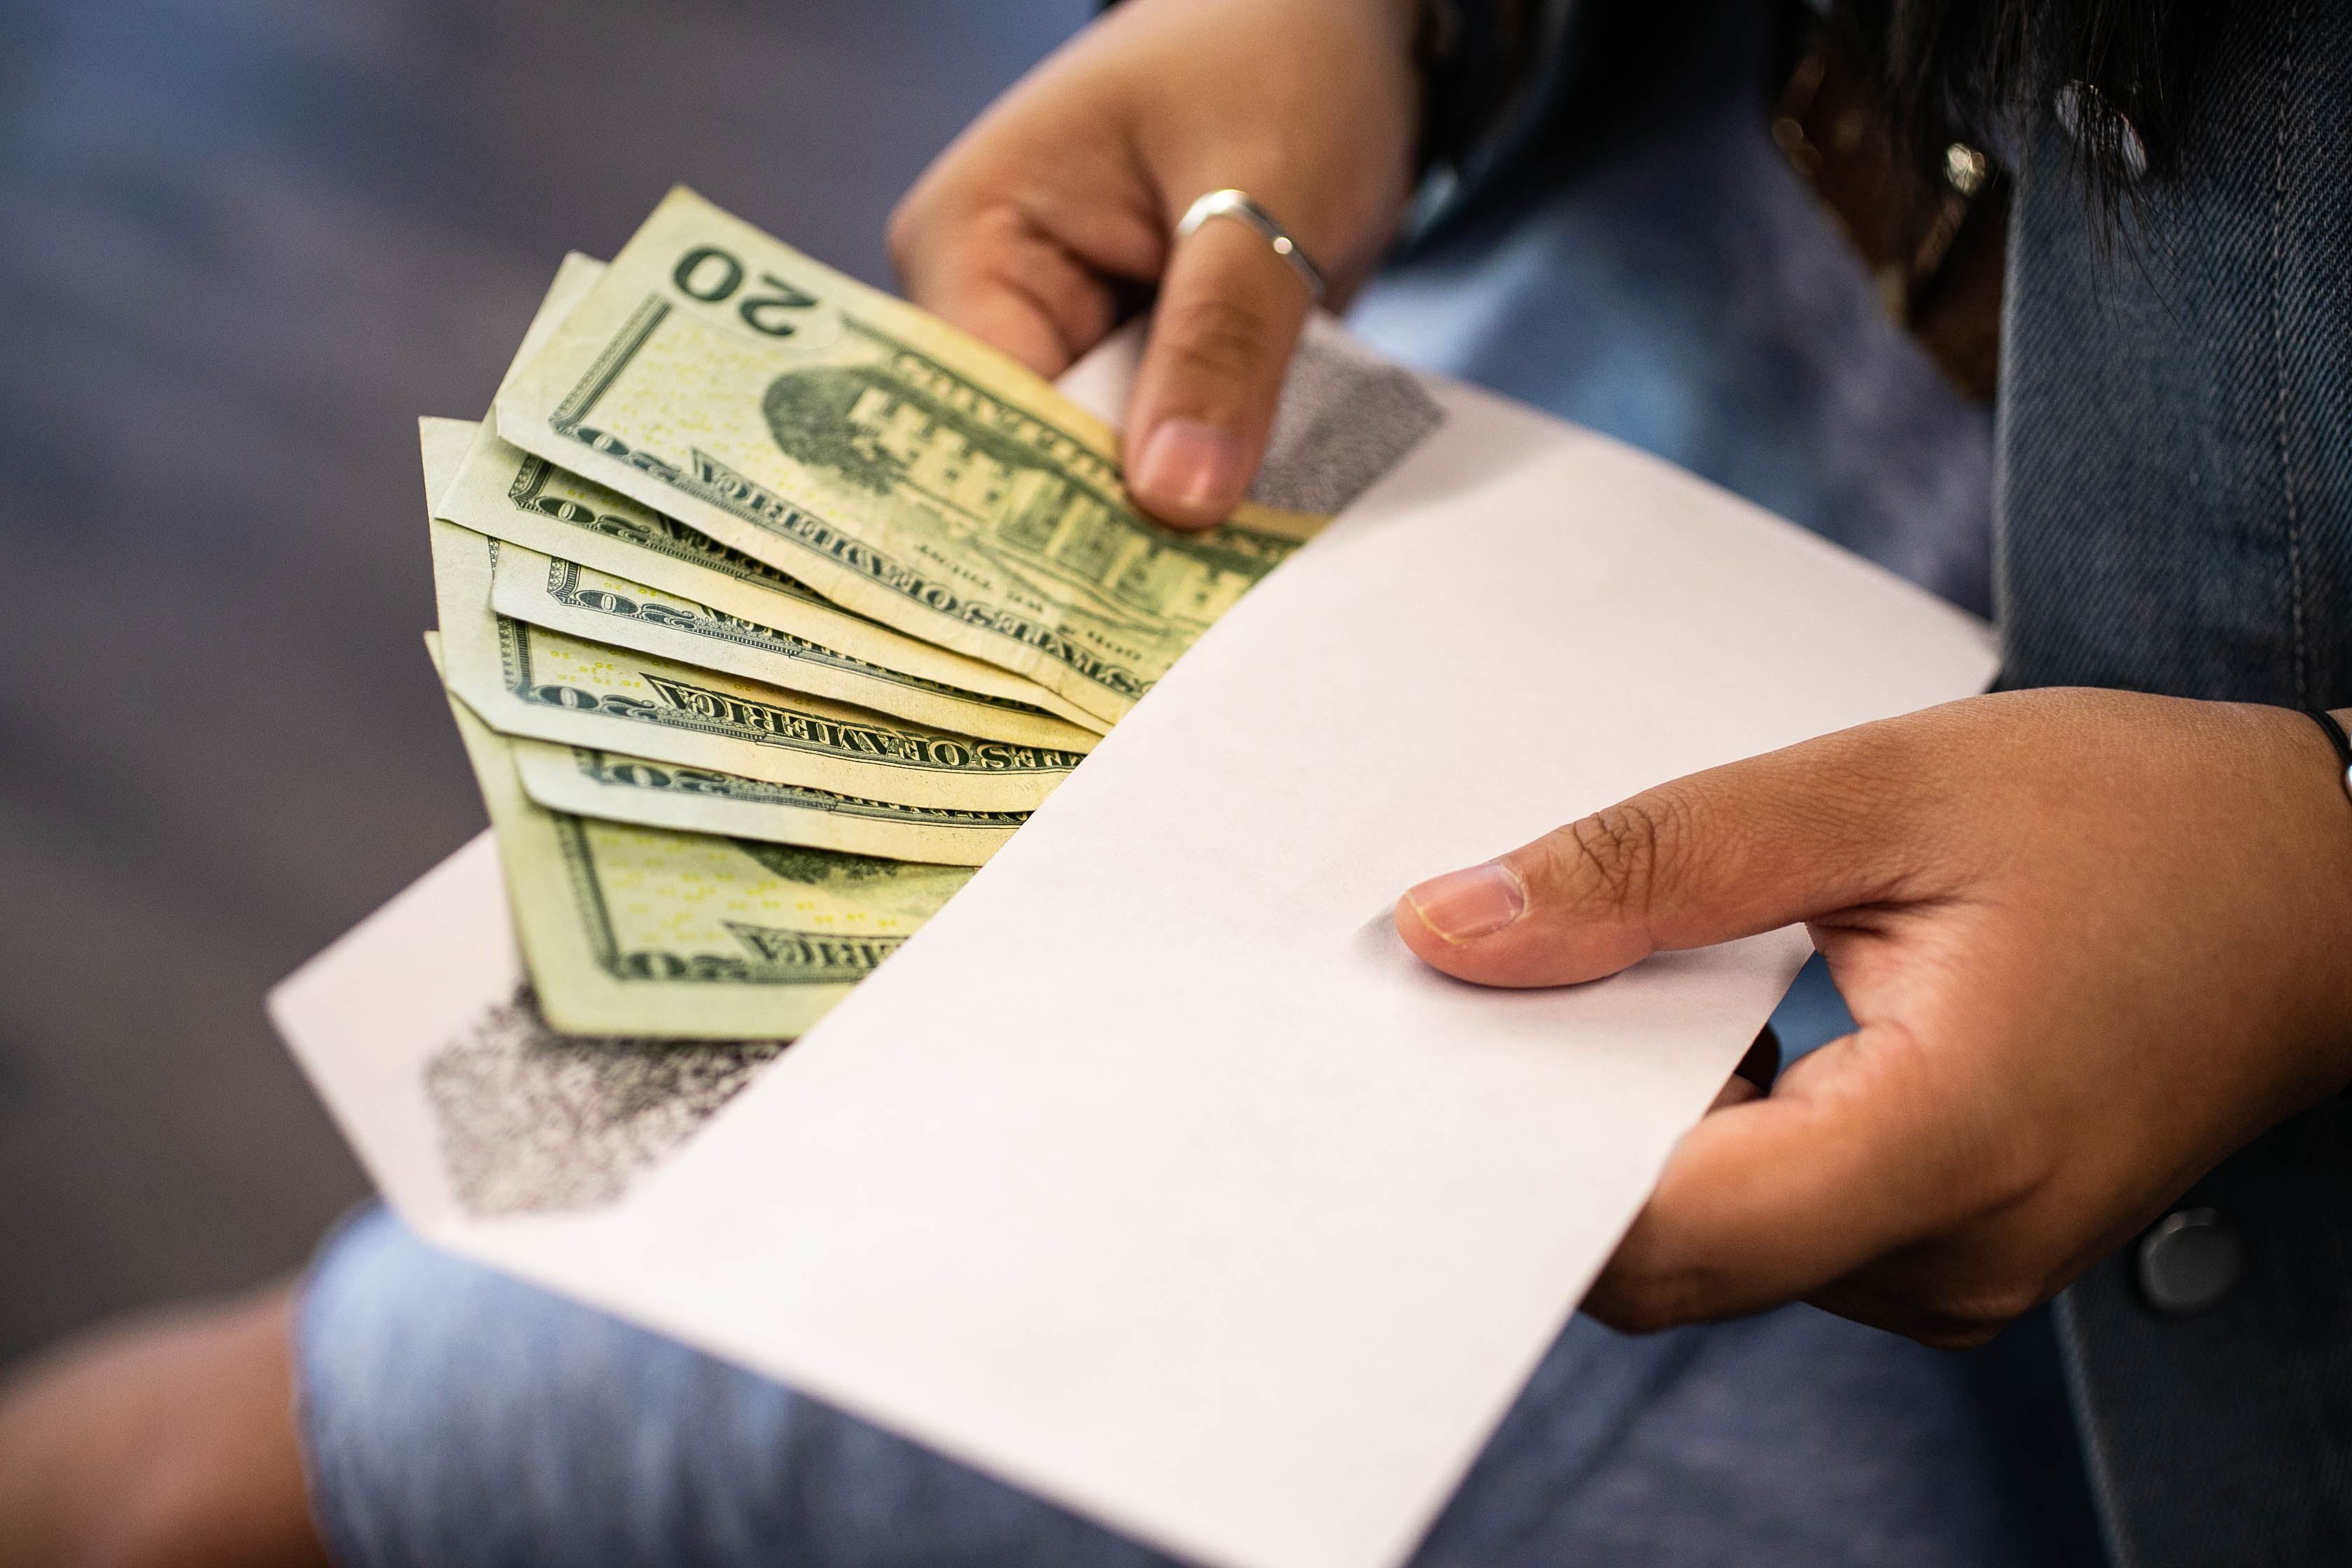 A woman's hand puts cash in an envelope.